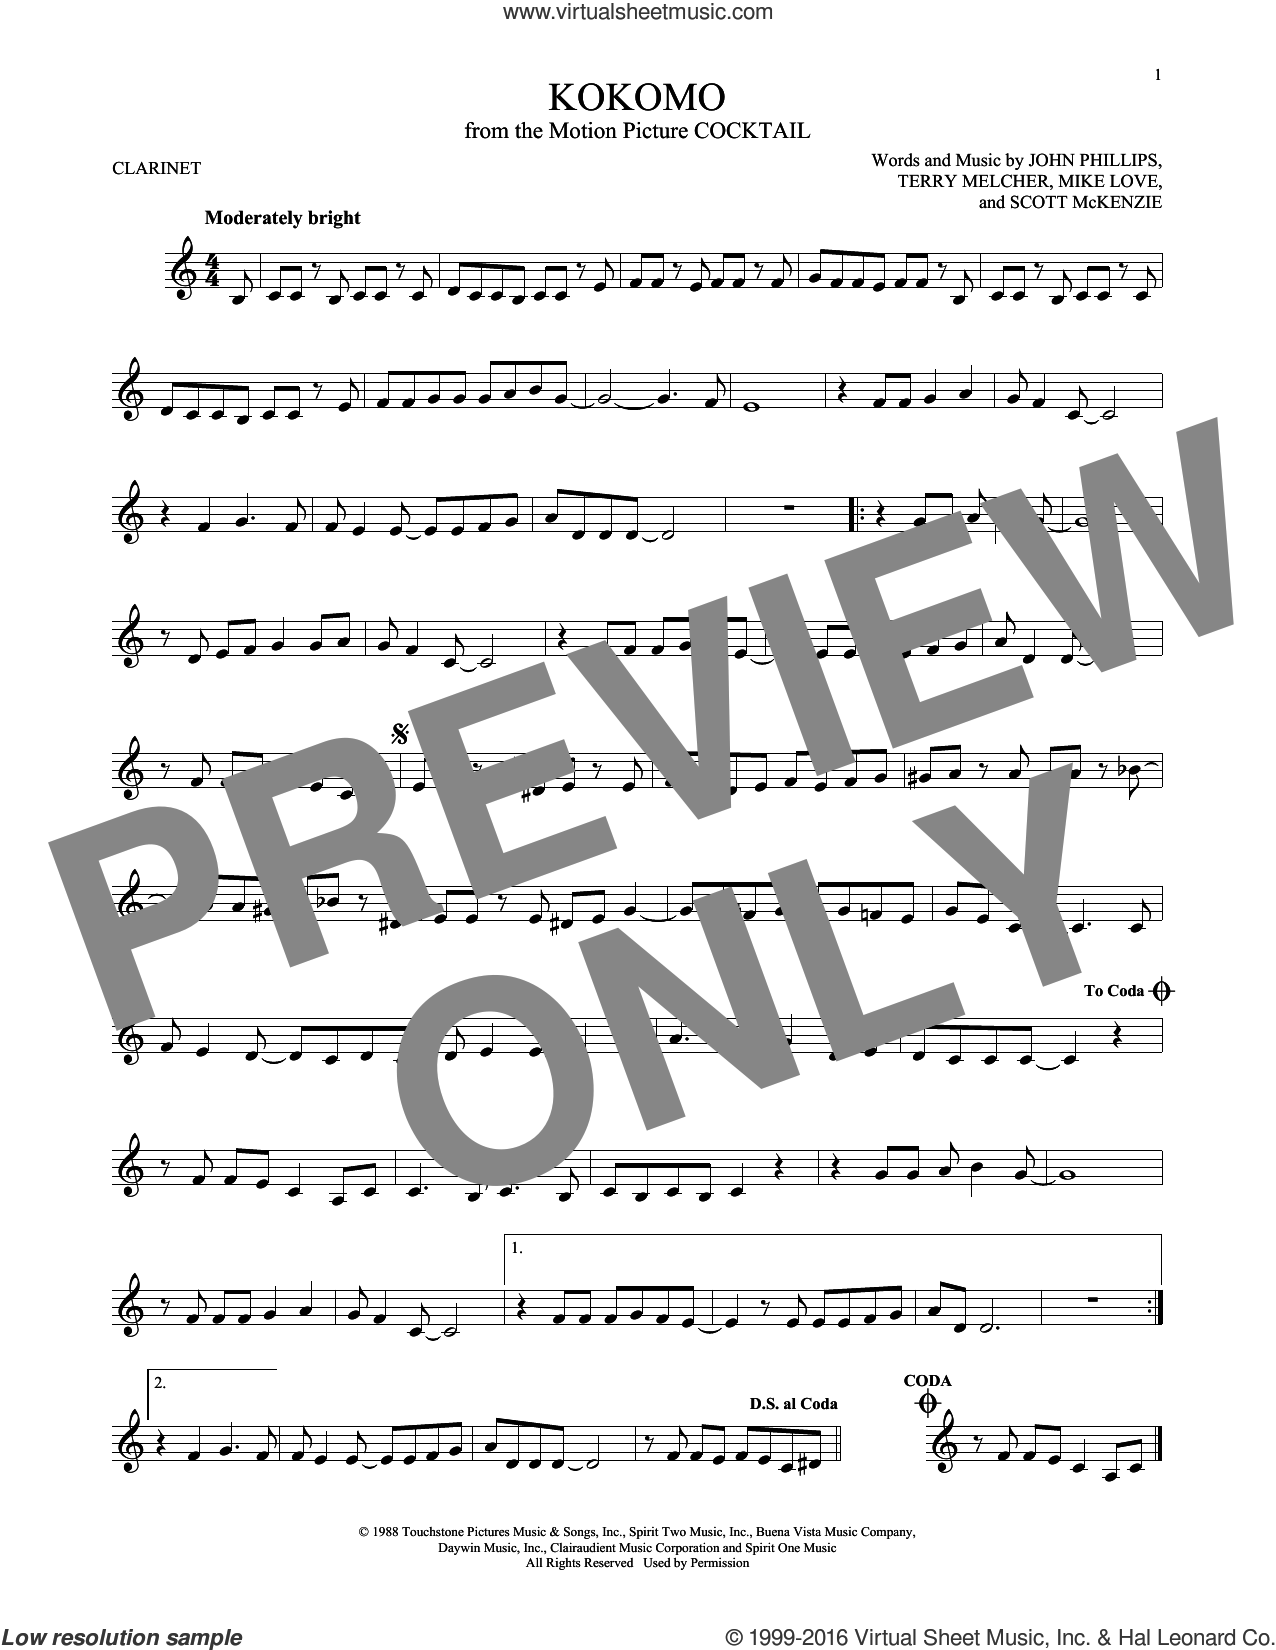 Kokomo sheet music for clarinet solo by Terry Melcher